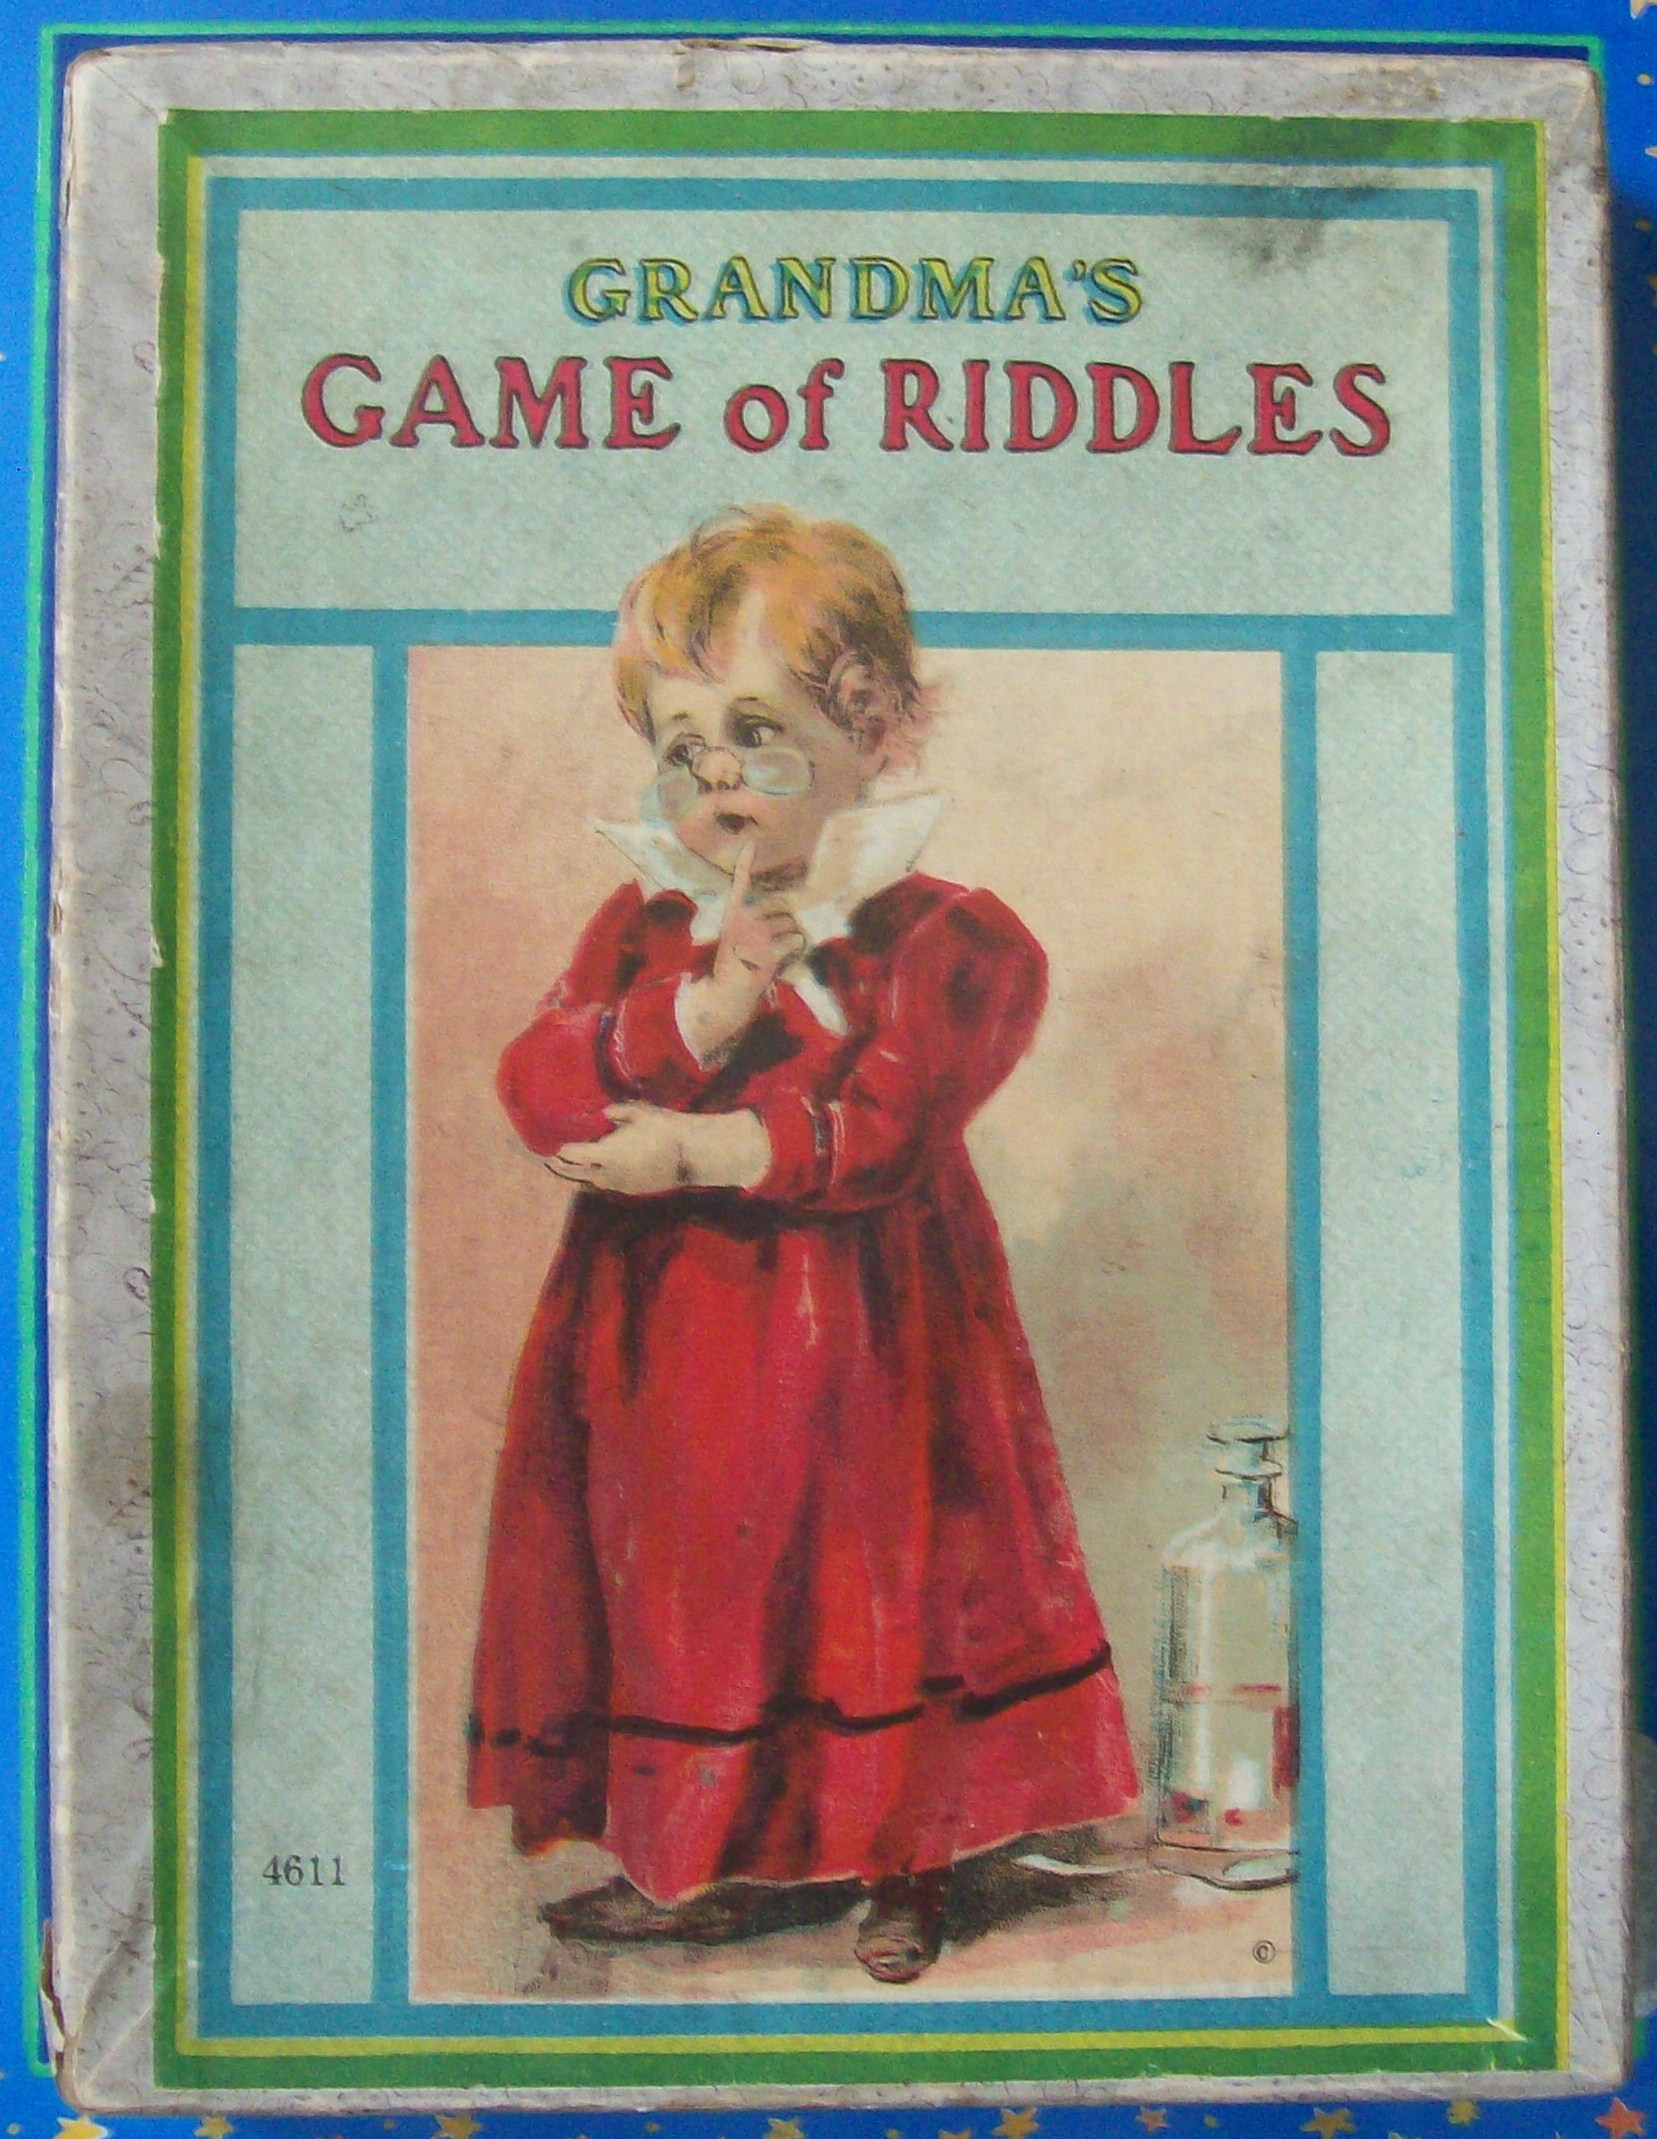 old milton bradley game of riddles